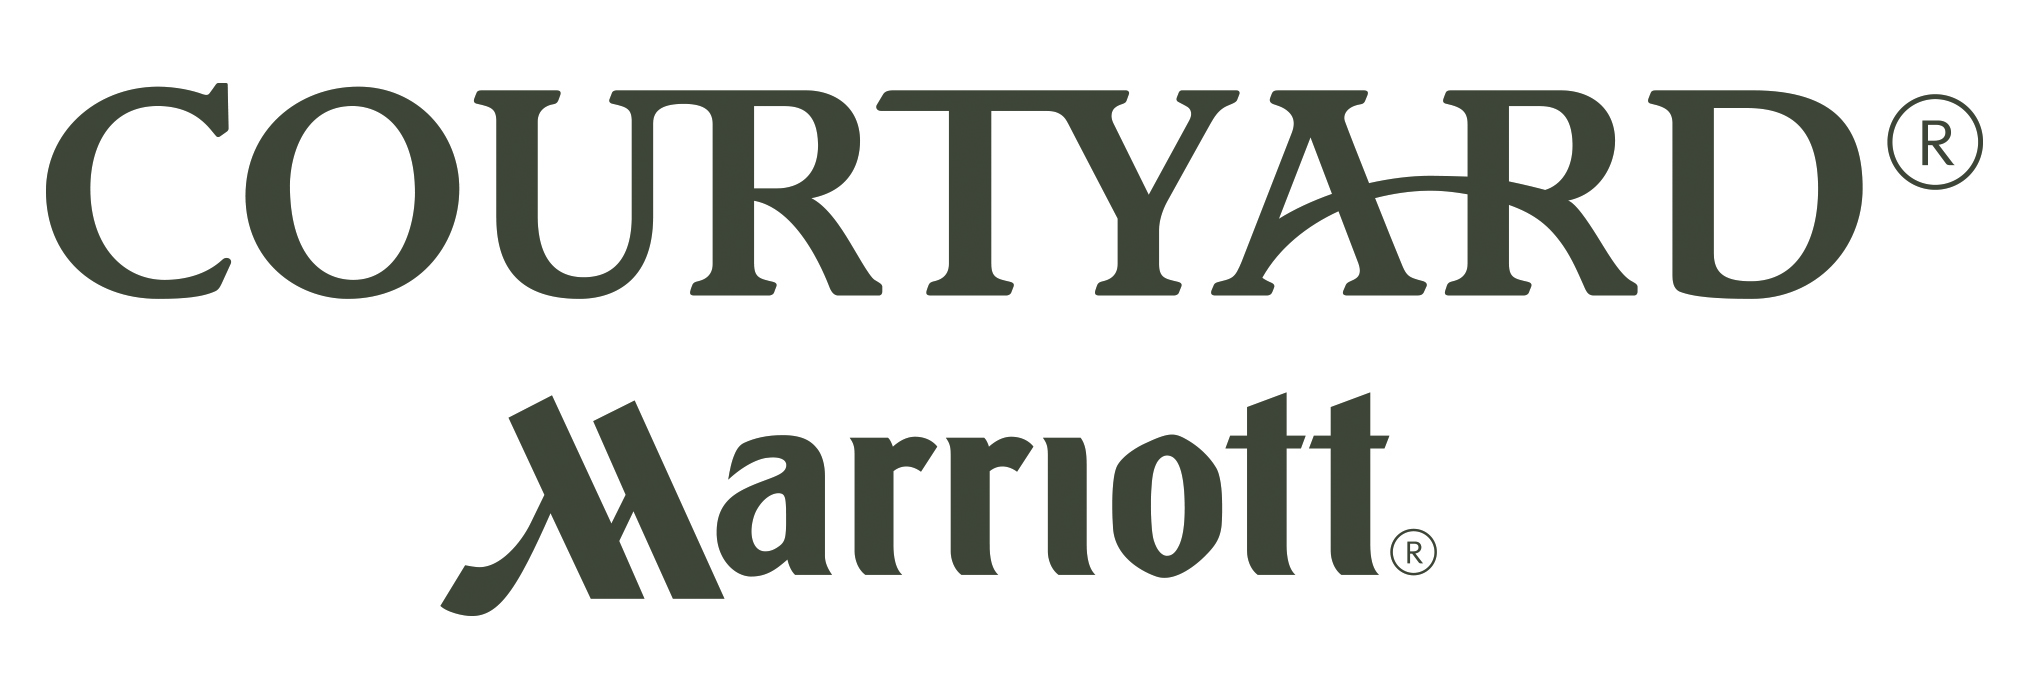 courtyard-marriot-logo.jpg